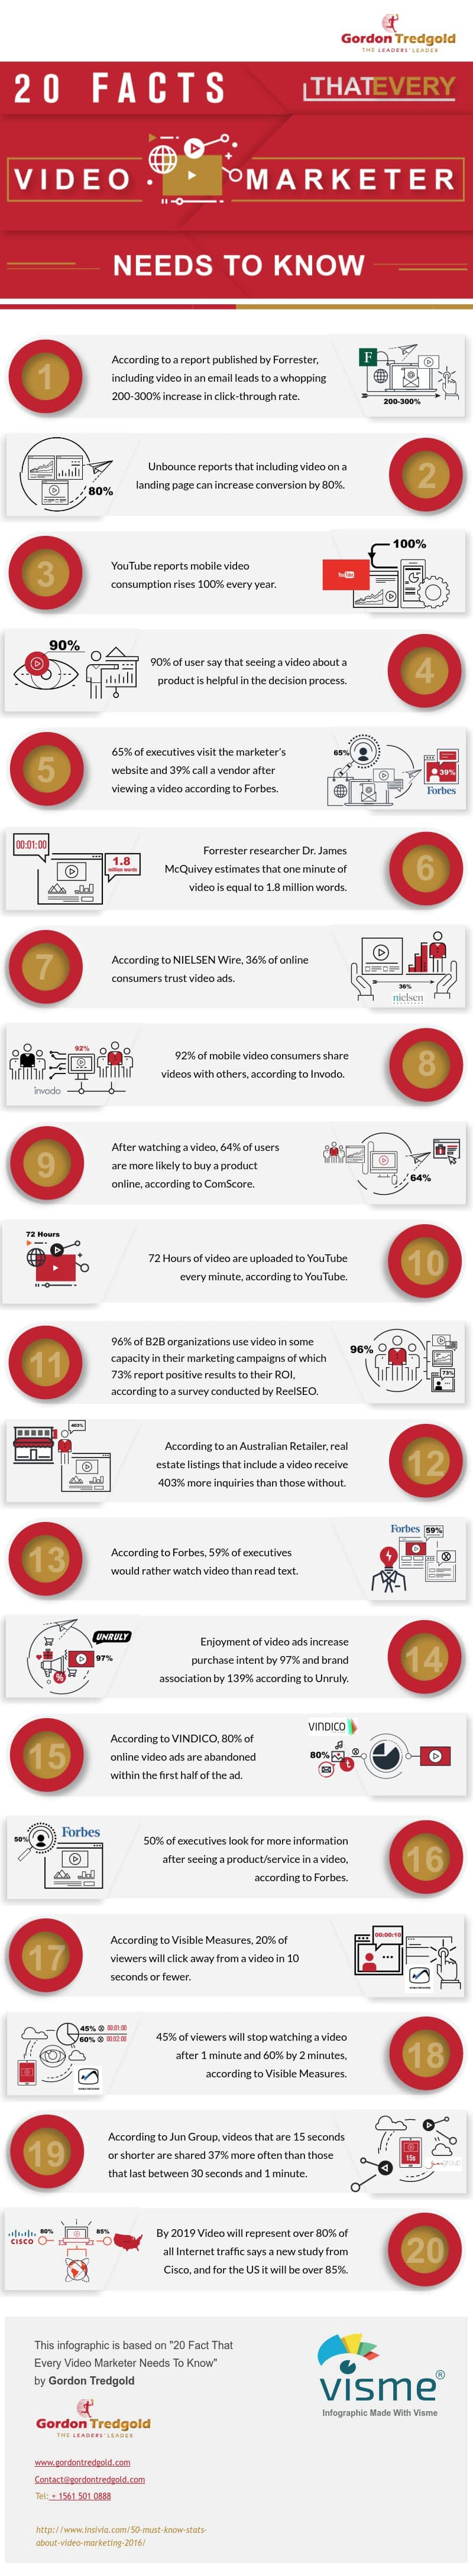 20 Fact That Every Video Needs To Know infographic